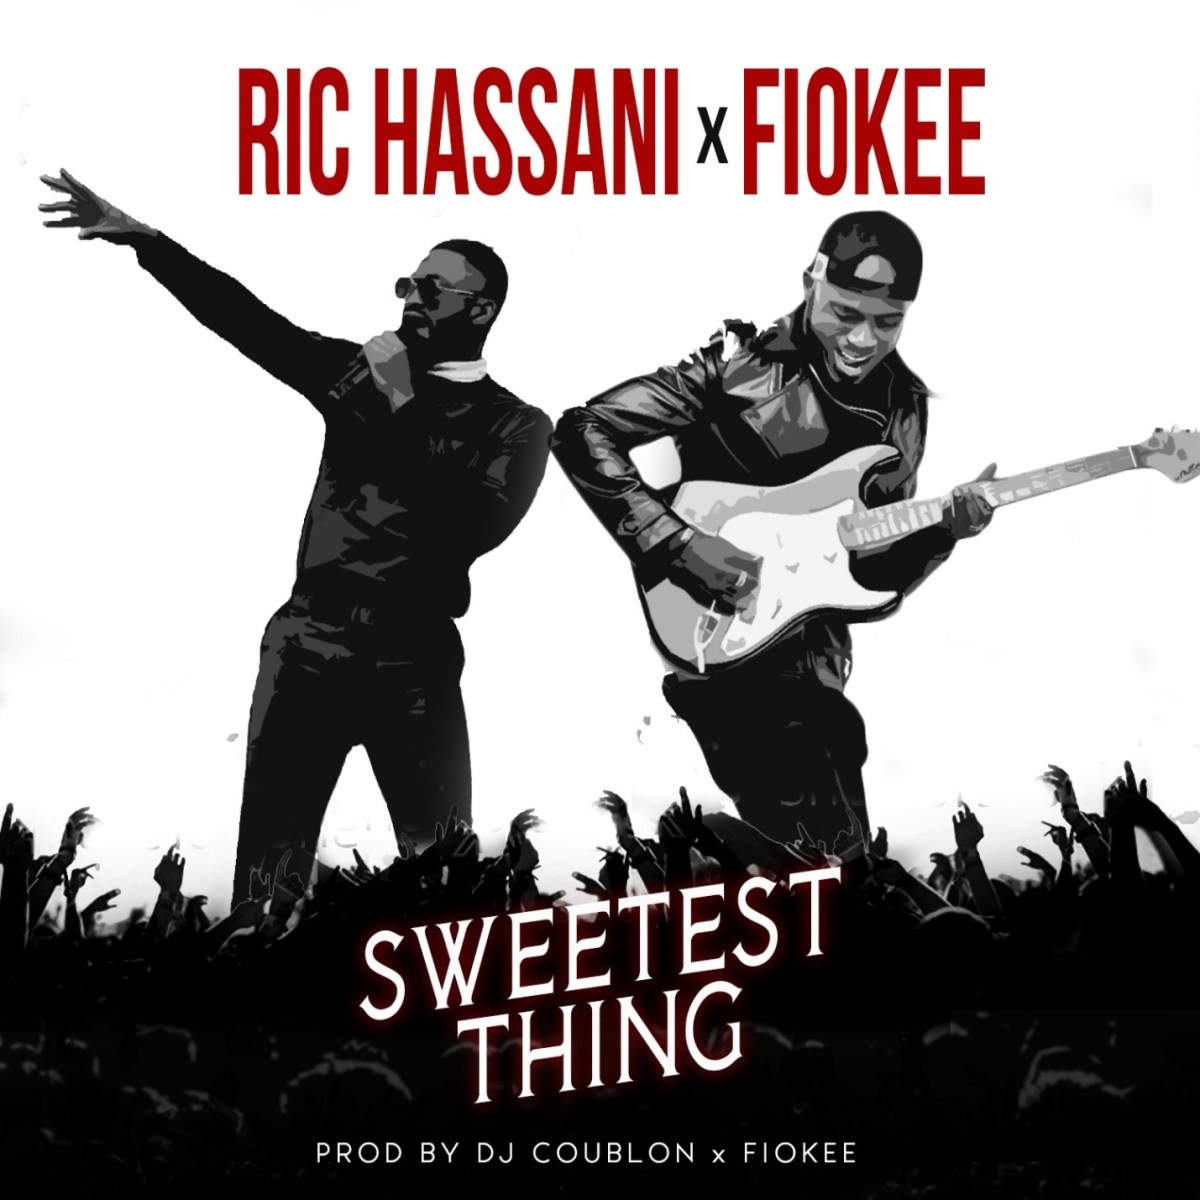 ric hassani and fiokee